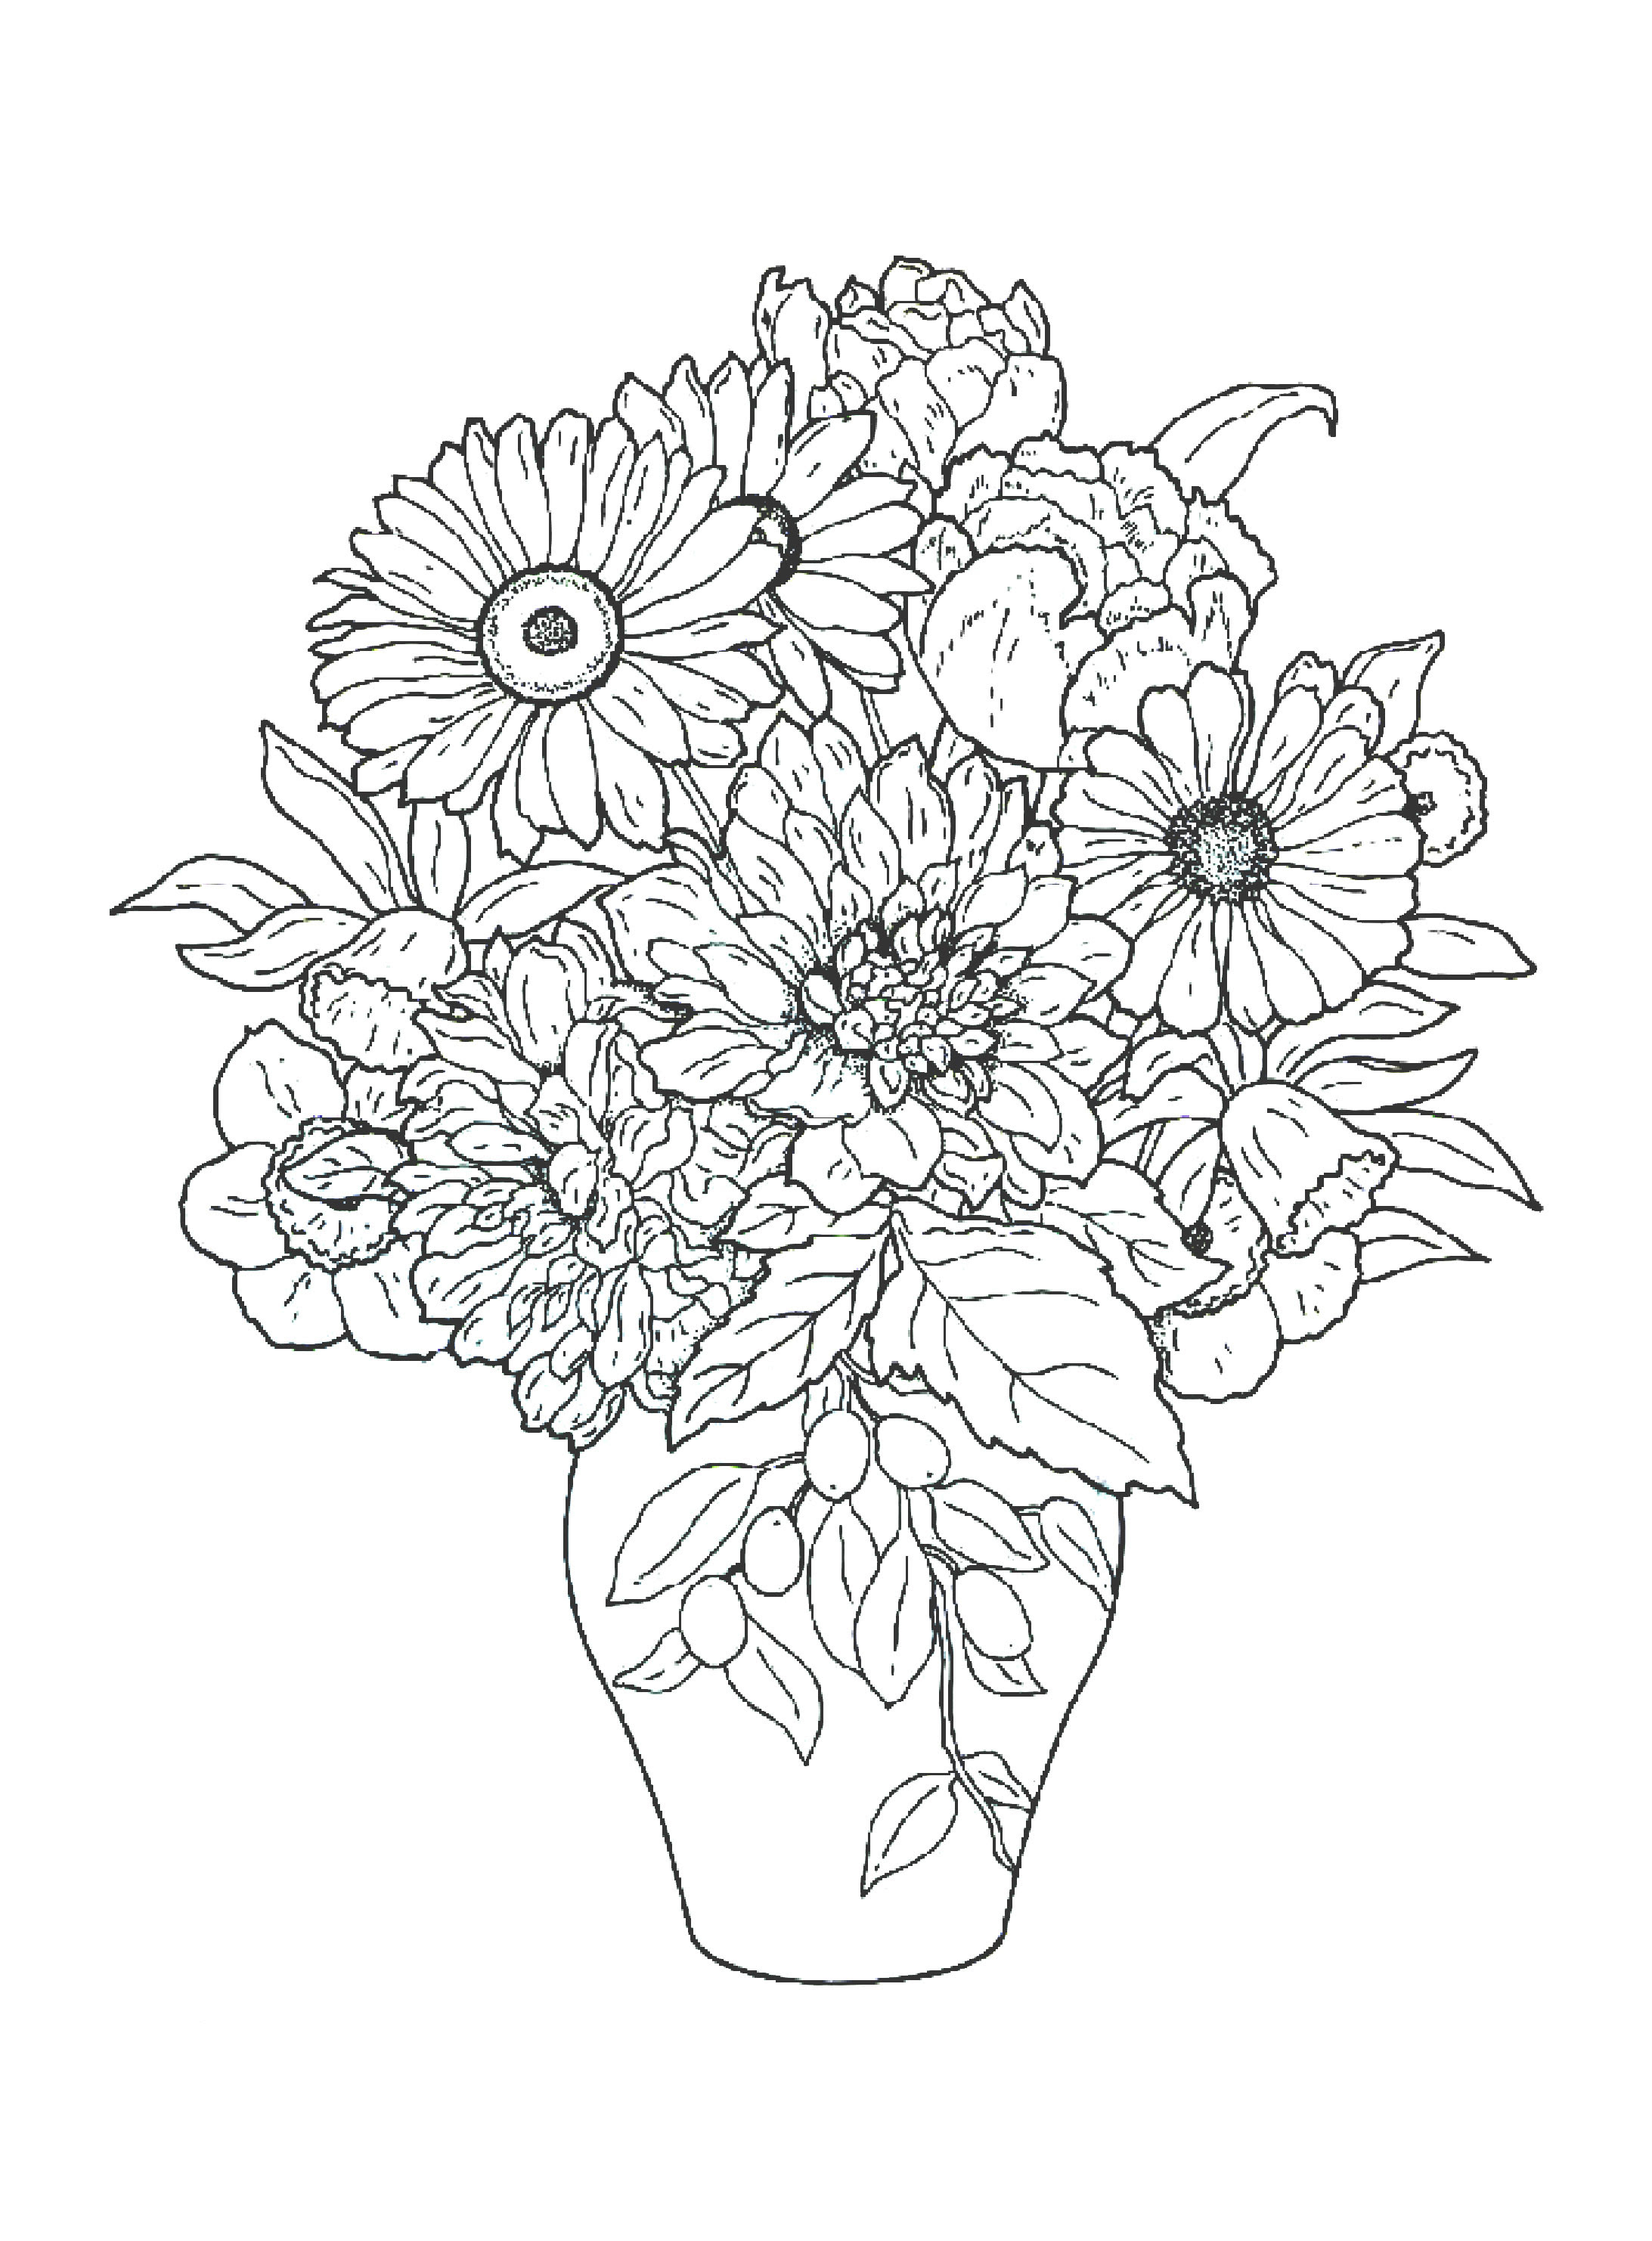 Bouquet Of Flowers Coloring Pages for childrens printable ...